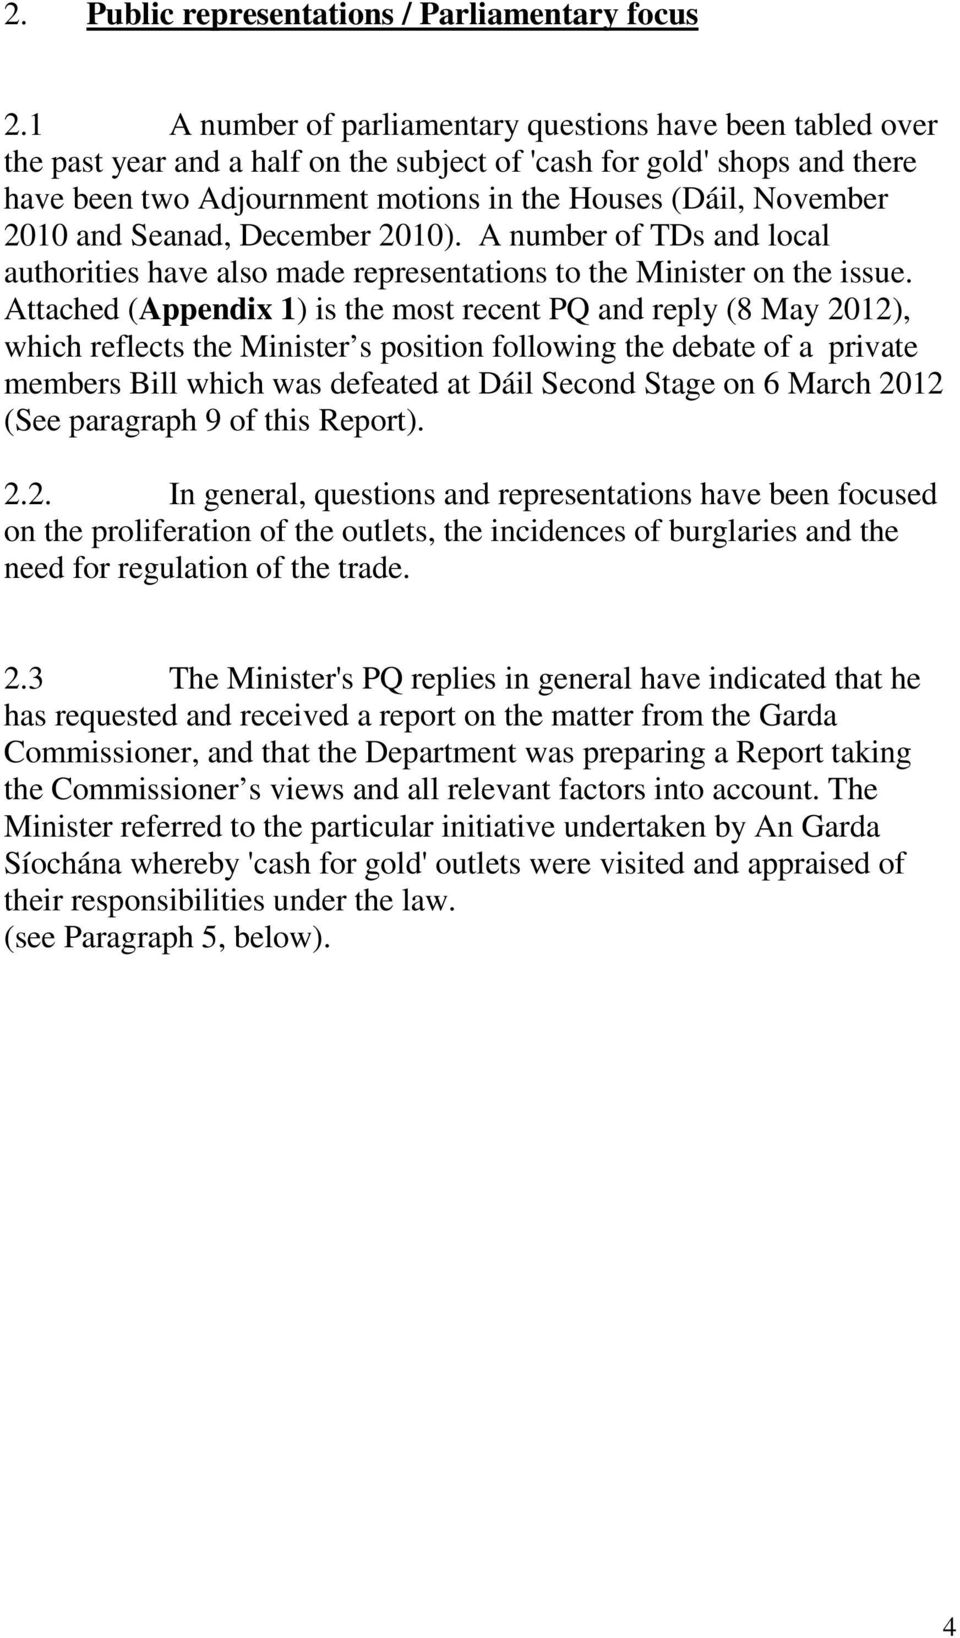 2010 and Seanad, December 2010). A number of TDs and local authorities have also made representations to the Minister on the issue.